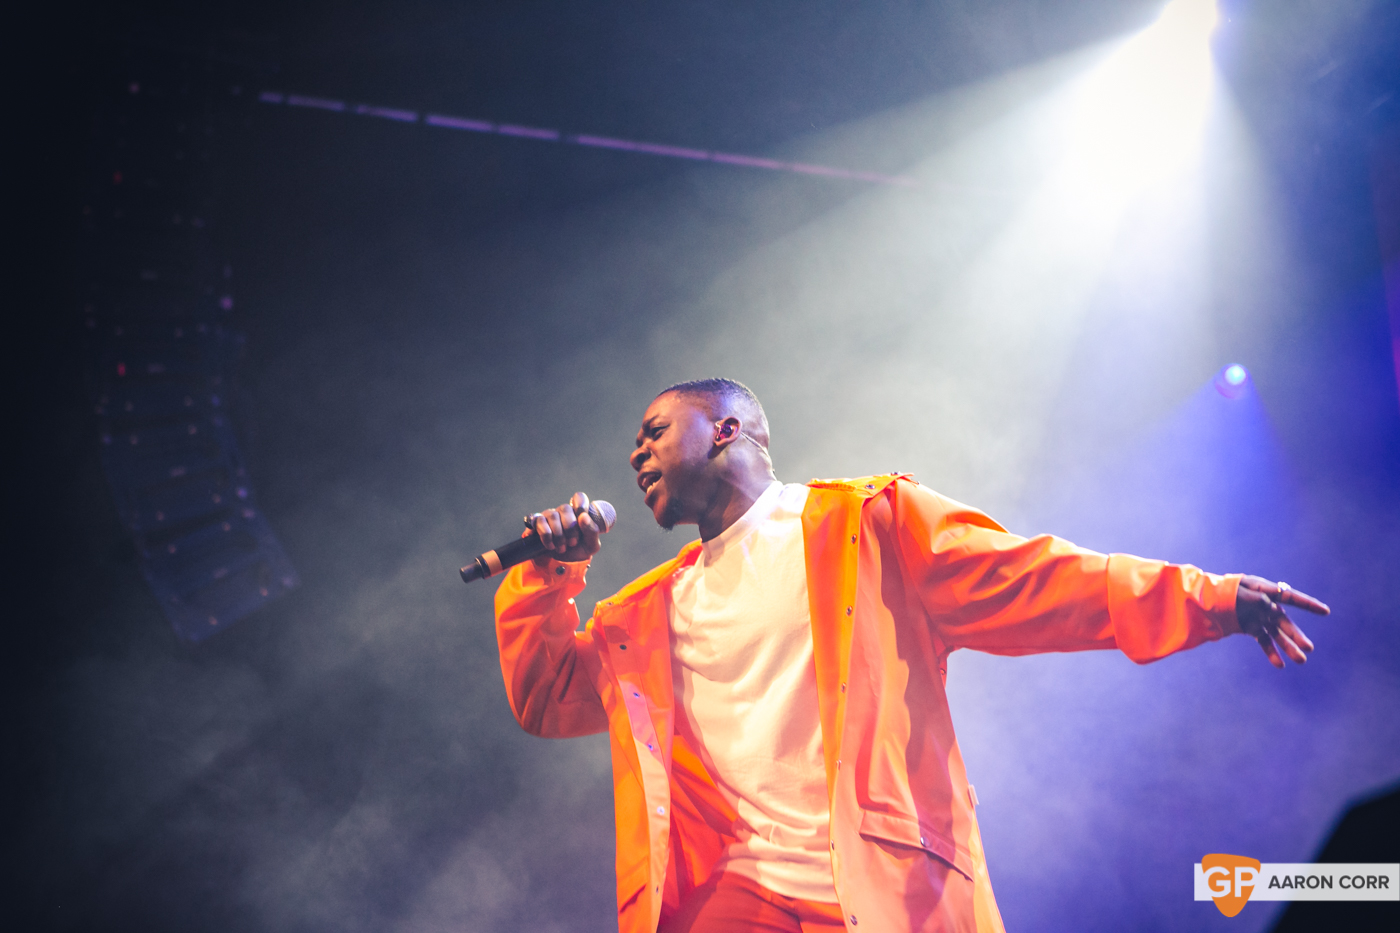 Jafaris at Choice Music Prize 2020 in Vicar Street, Dublin on 05-Mar-20 by Aaron Corr-5192